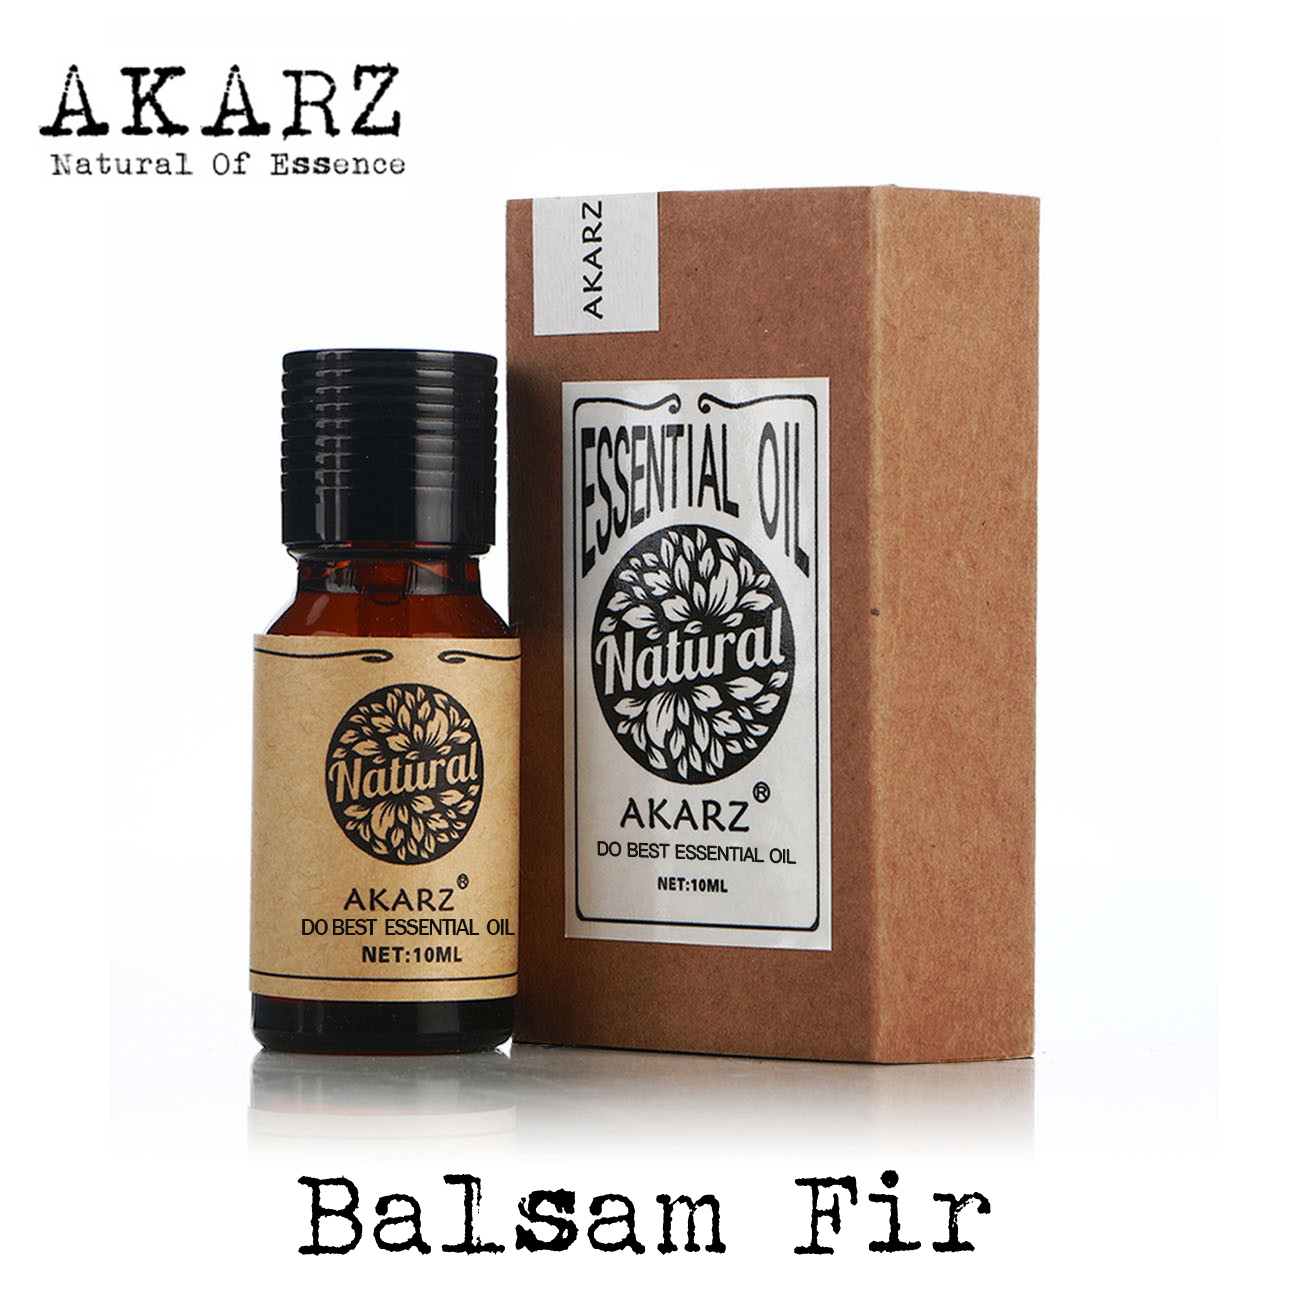 AKARZ Famous brand natural Balsam Fir essential oil sterilization Calm Relieve pressure Reduce muscle aches Balsam Fir oilAKARZ Famous brand natural Balsam Fir essential oil sterilization Calm Relieve pressure Reduce muscle aches Balsam Fir oil